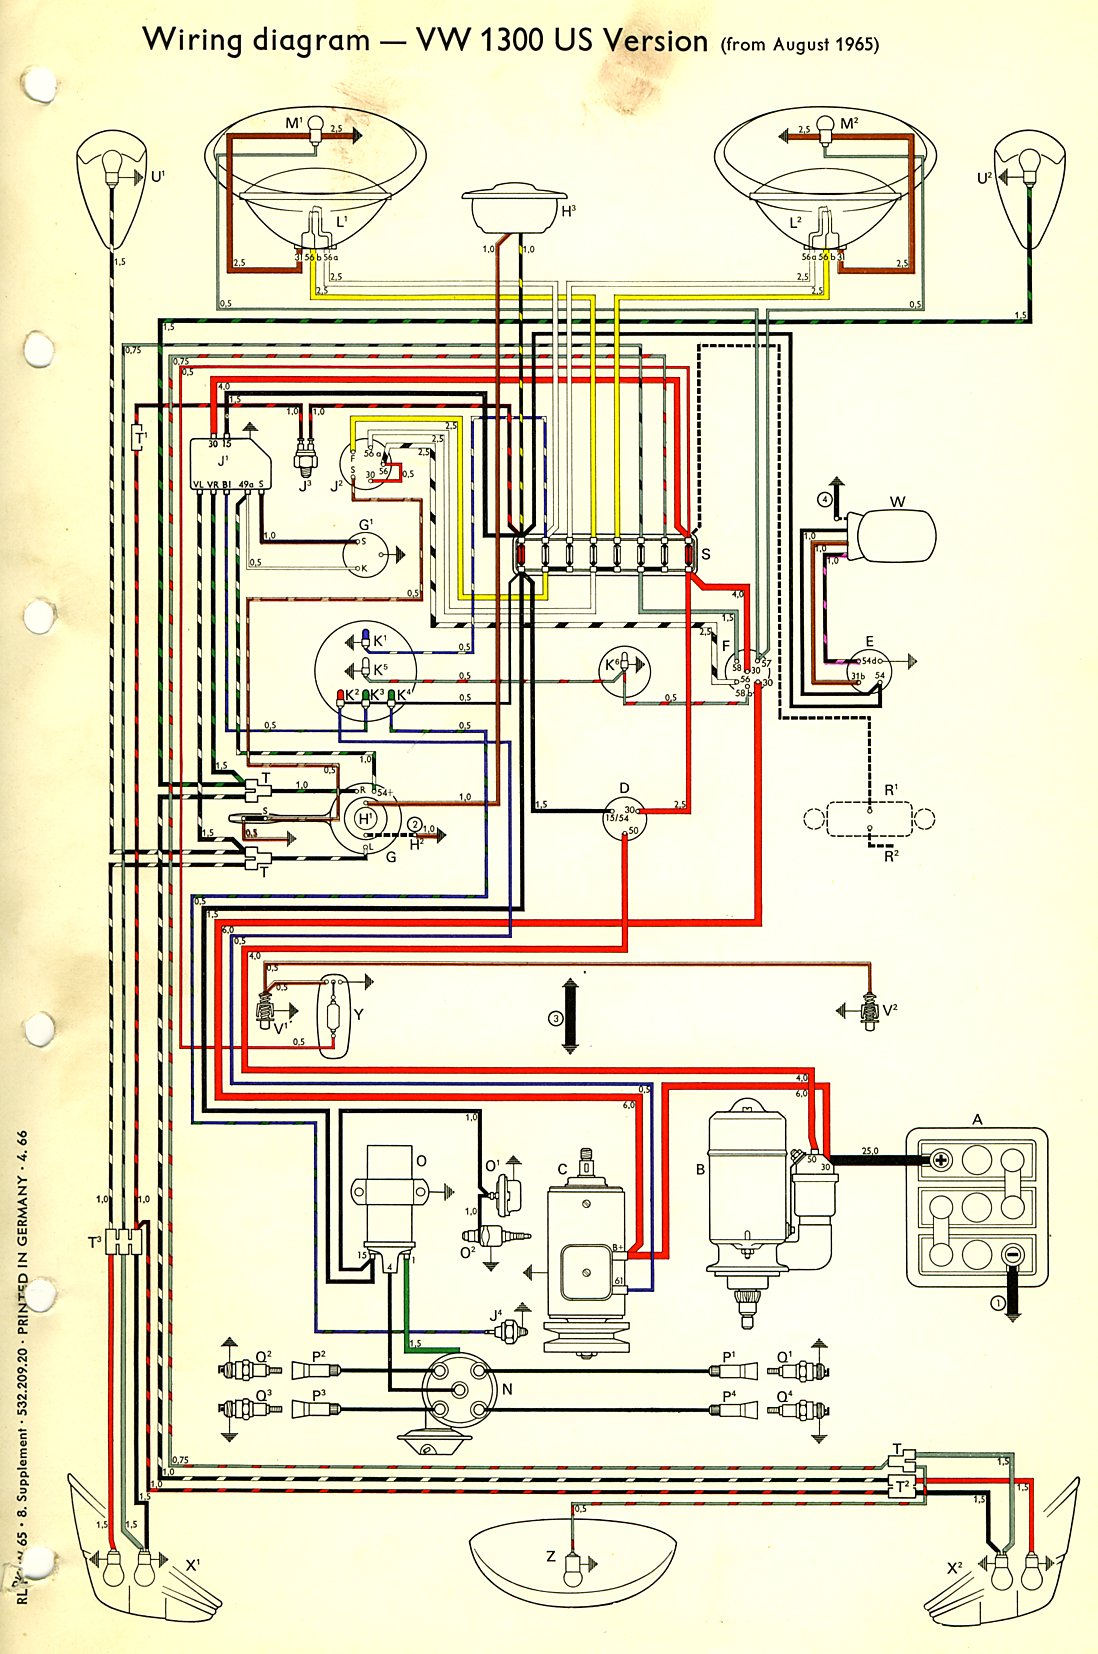 bug_66_USA thesamba com type 1 wiring diagrams 67 VW Beetle Wiring Diagram at bayanpartner.co